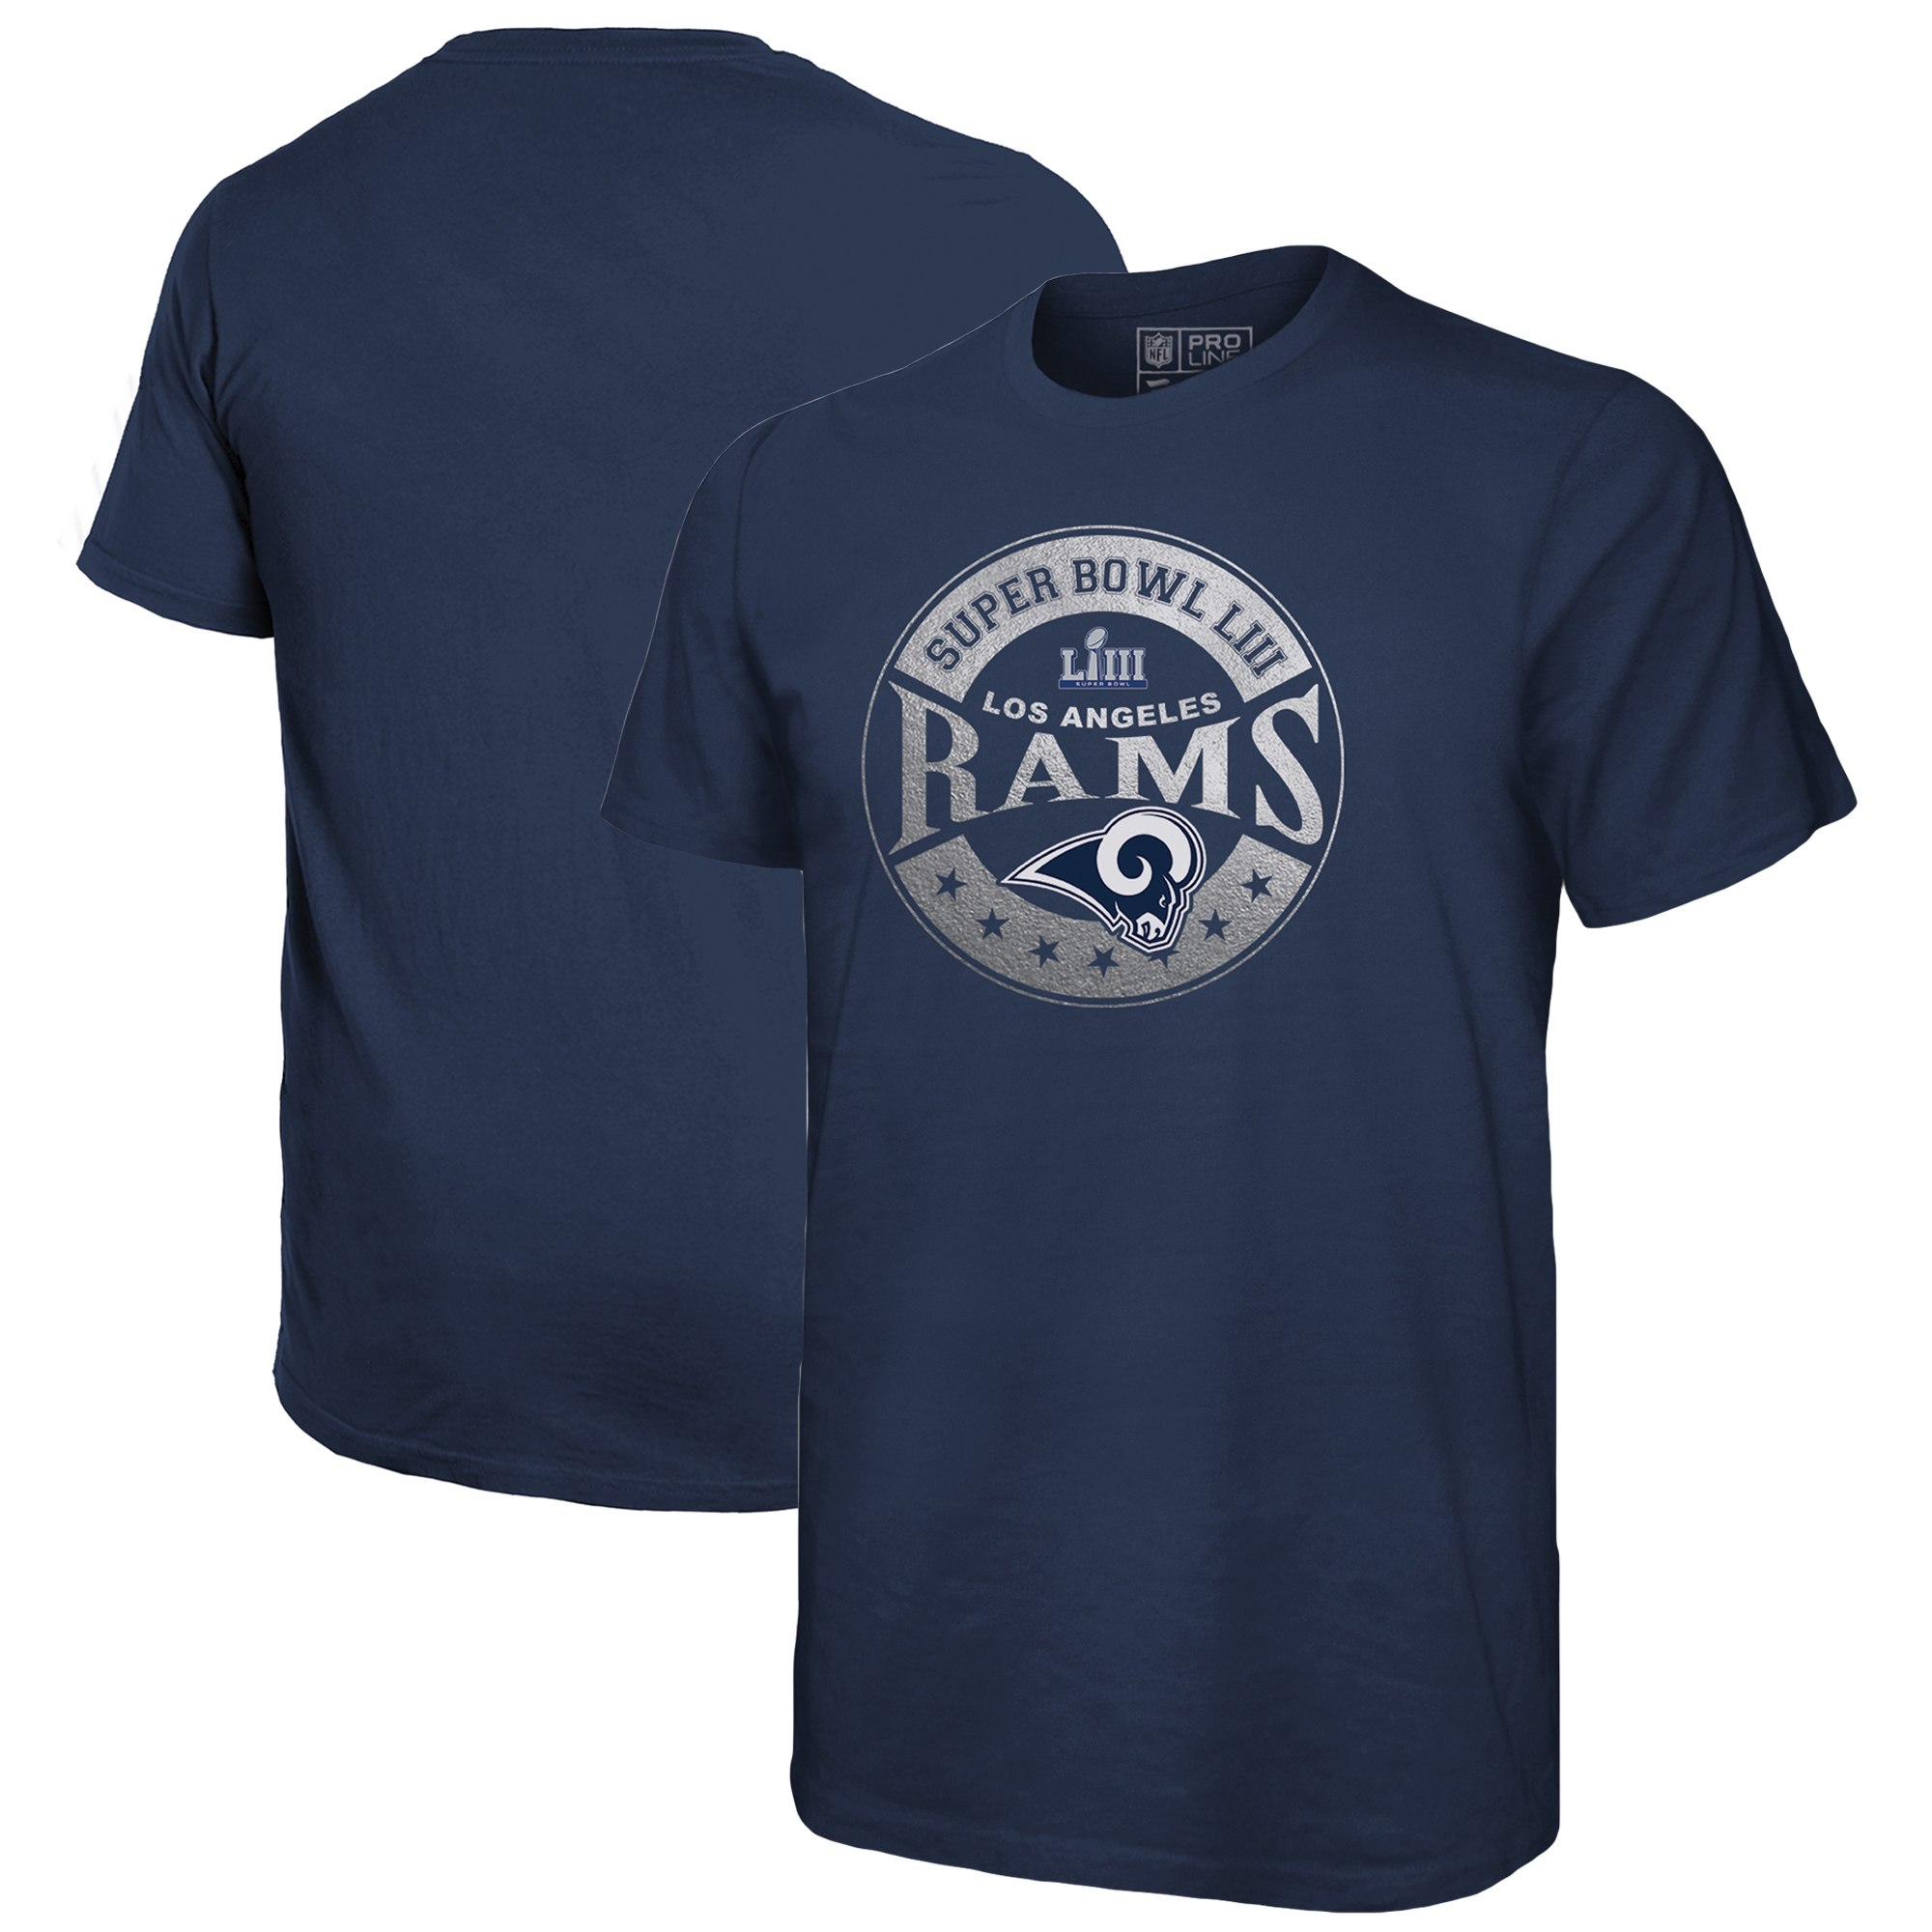 Los Angeles Rams NFL Pro Line by Fanatics Branded Super Bowl LIII Bound In The Zone T-Shirt Navy